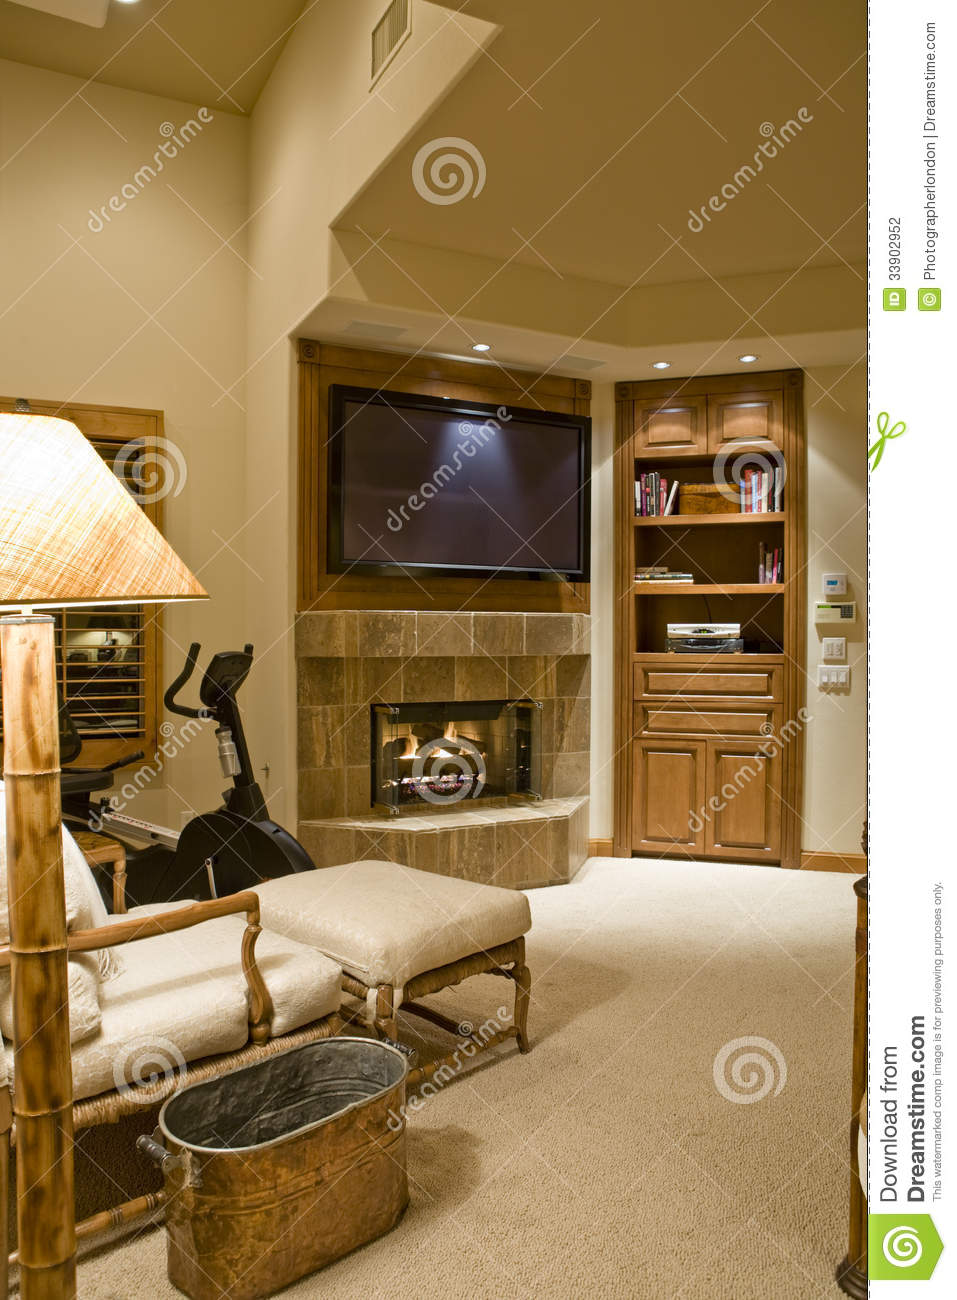 living room with tv and fireplace tv fireplace with reclining chair in foreground stock 25682